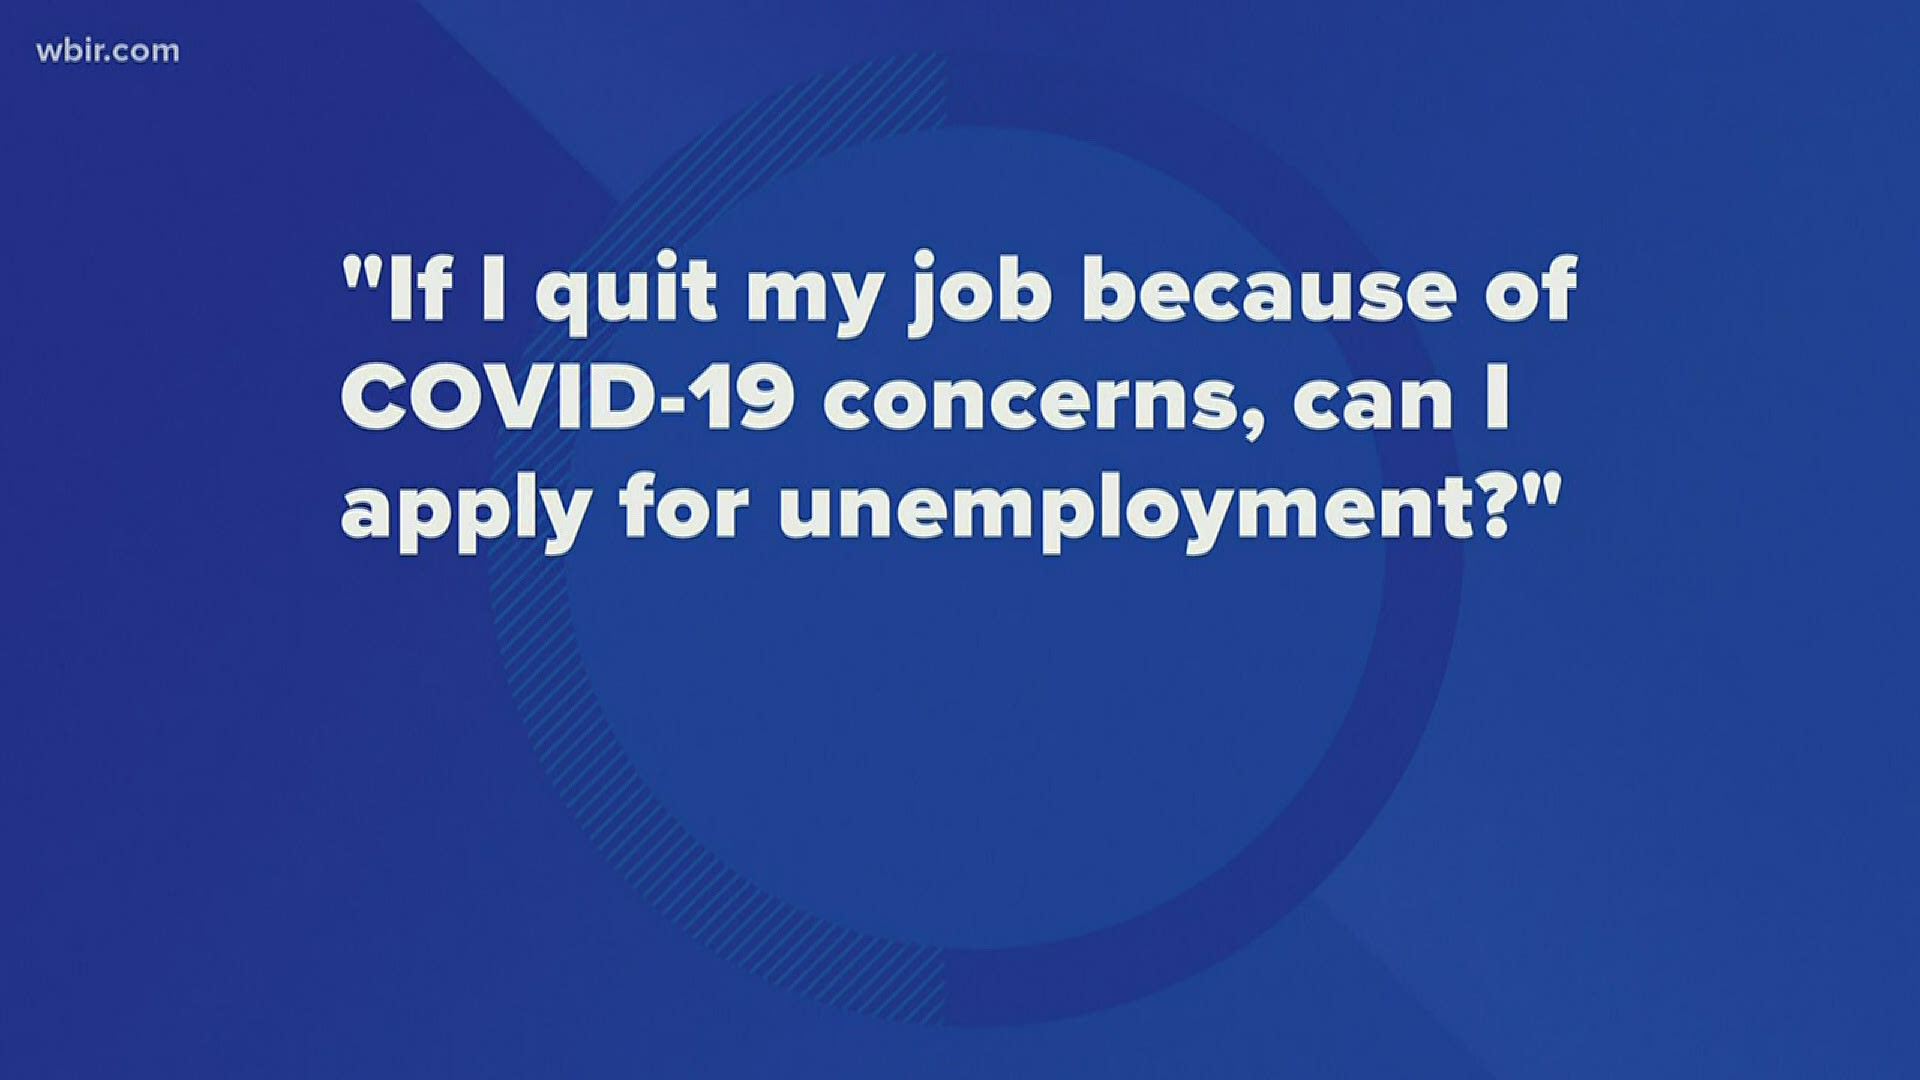 Refusal To Work Could Impact Tennessee Employment Wbir Com